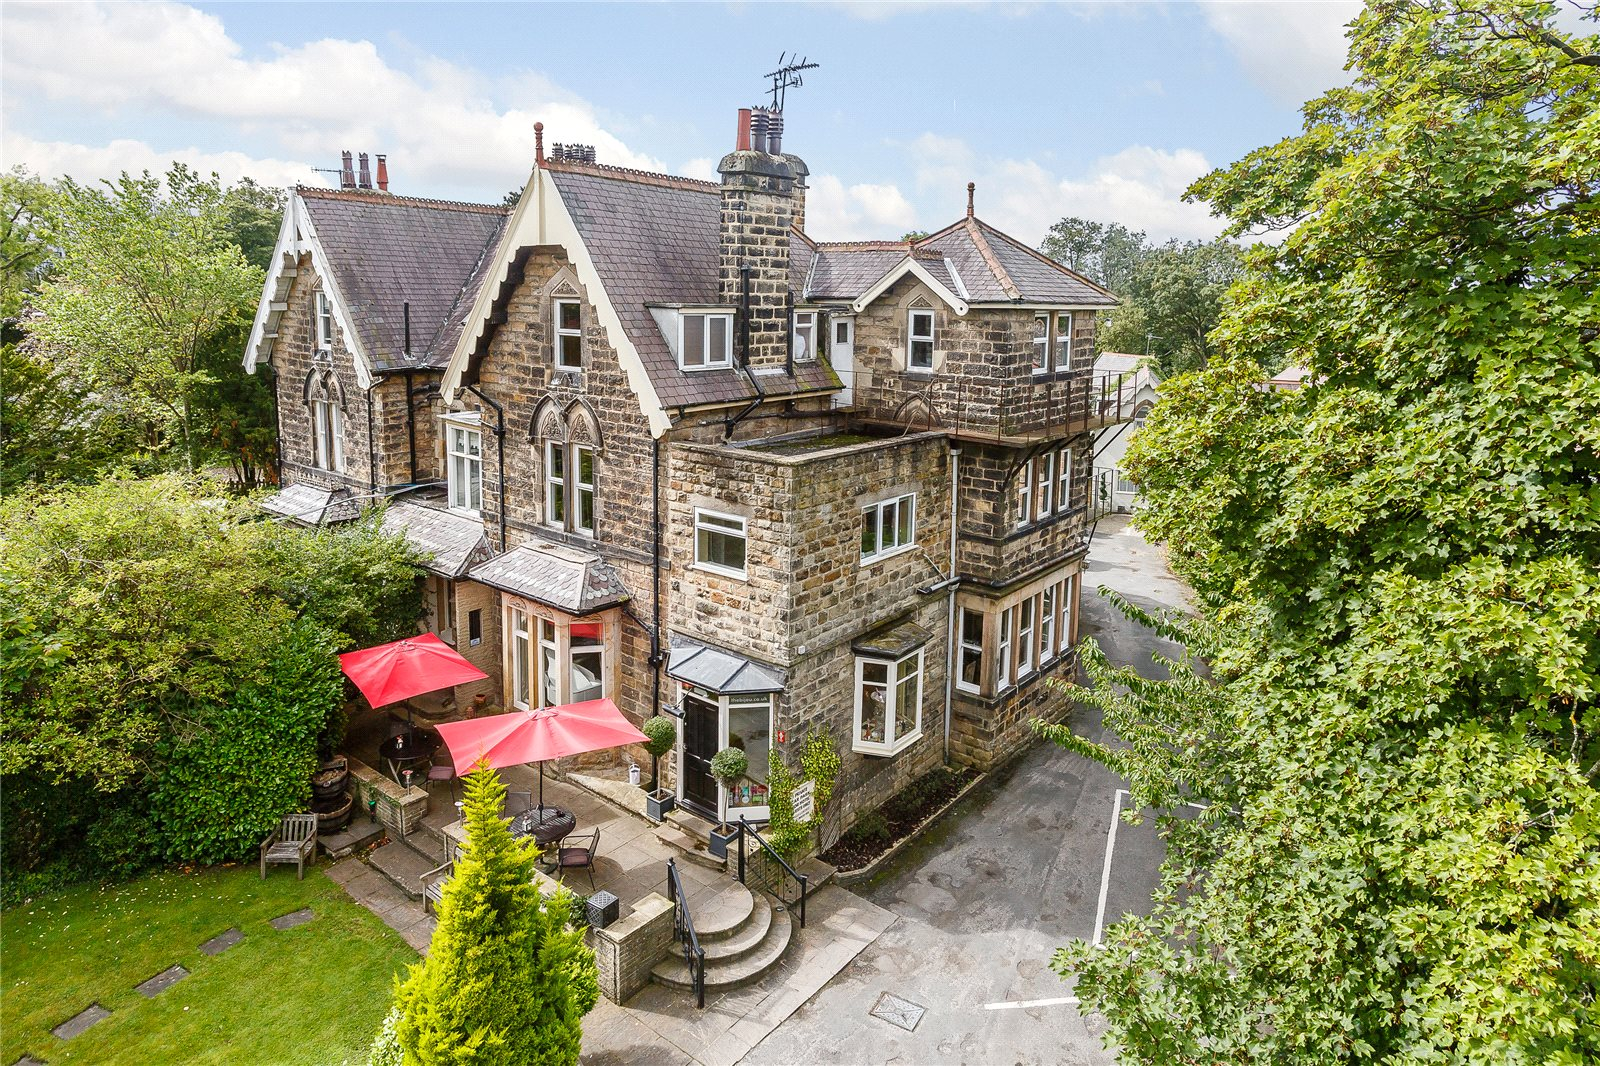 Single Family Home for Sale at Ripon Road, Harrogate, North Yorkshire, HG1 Harrogate, England